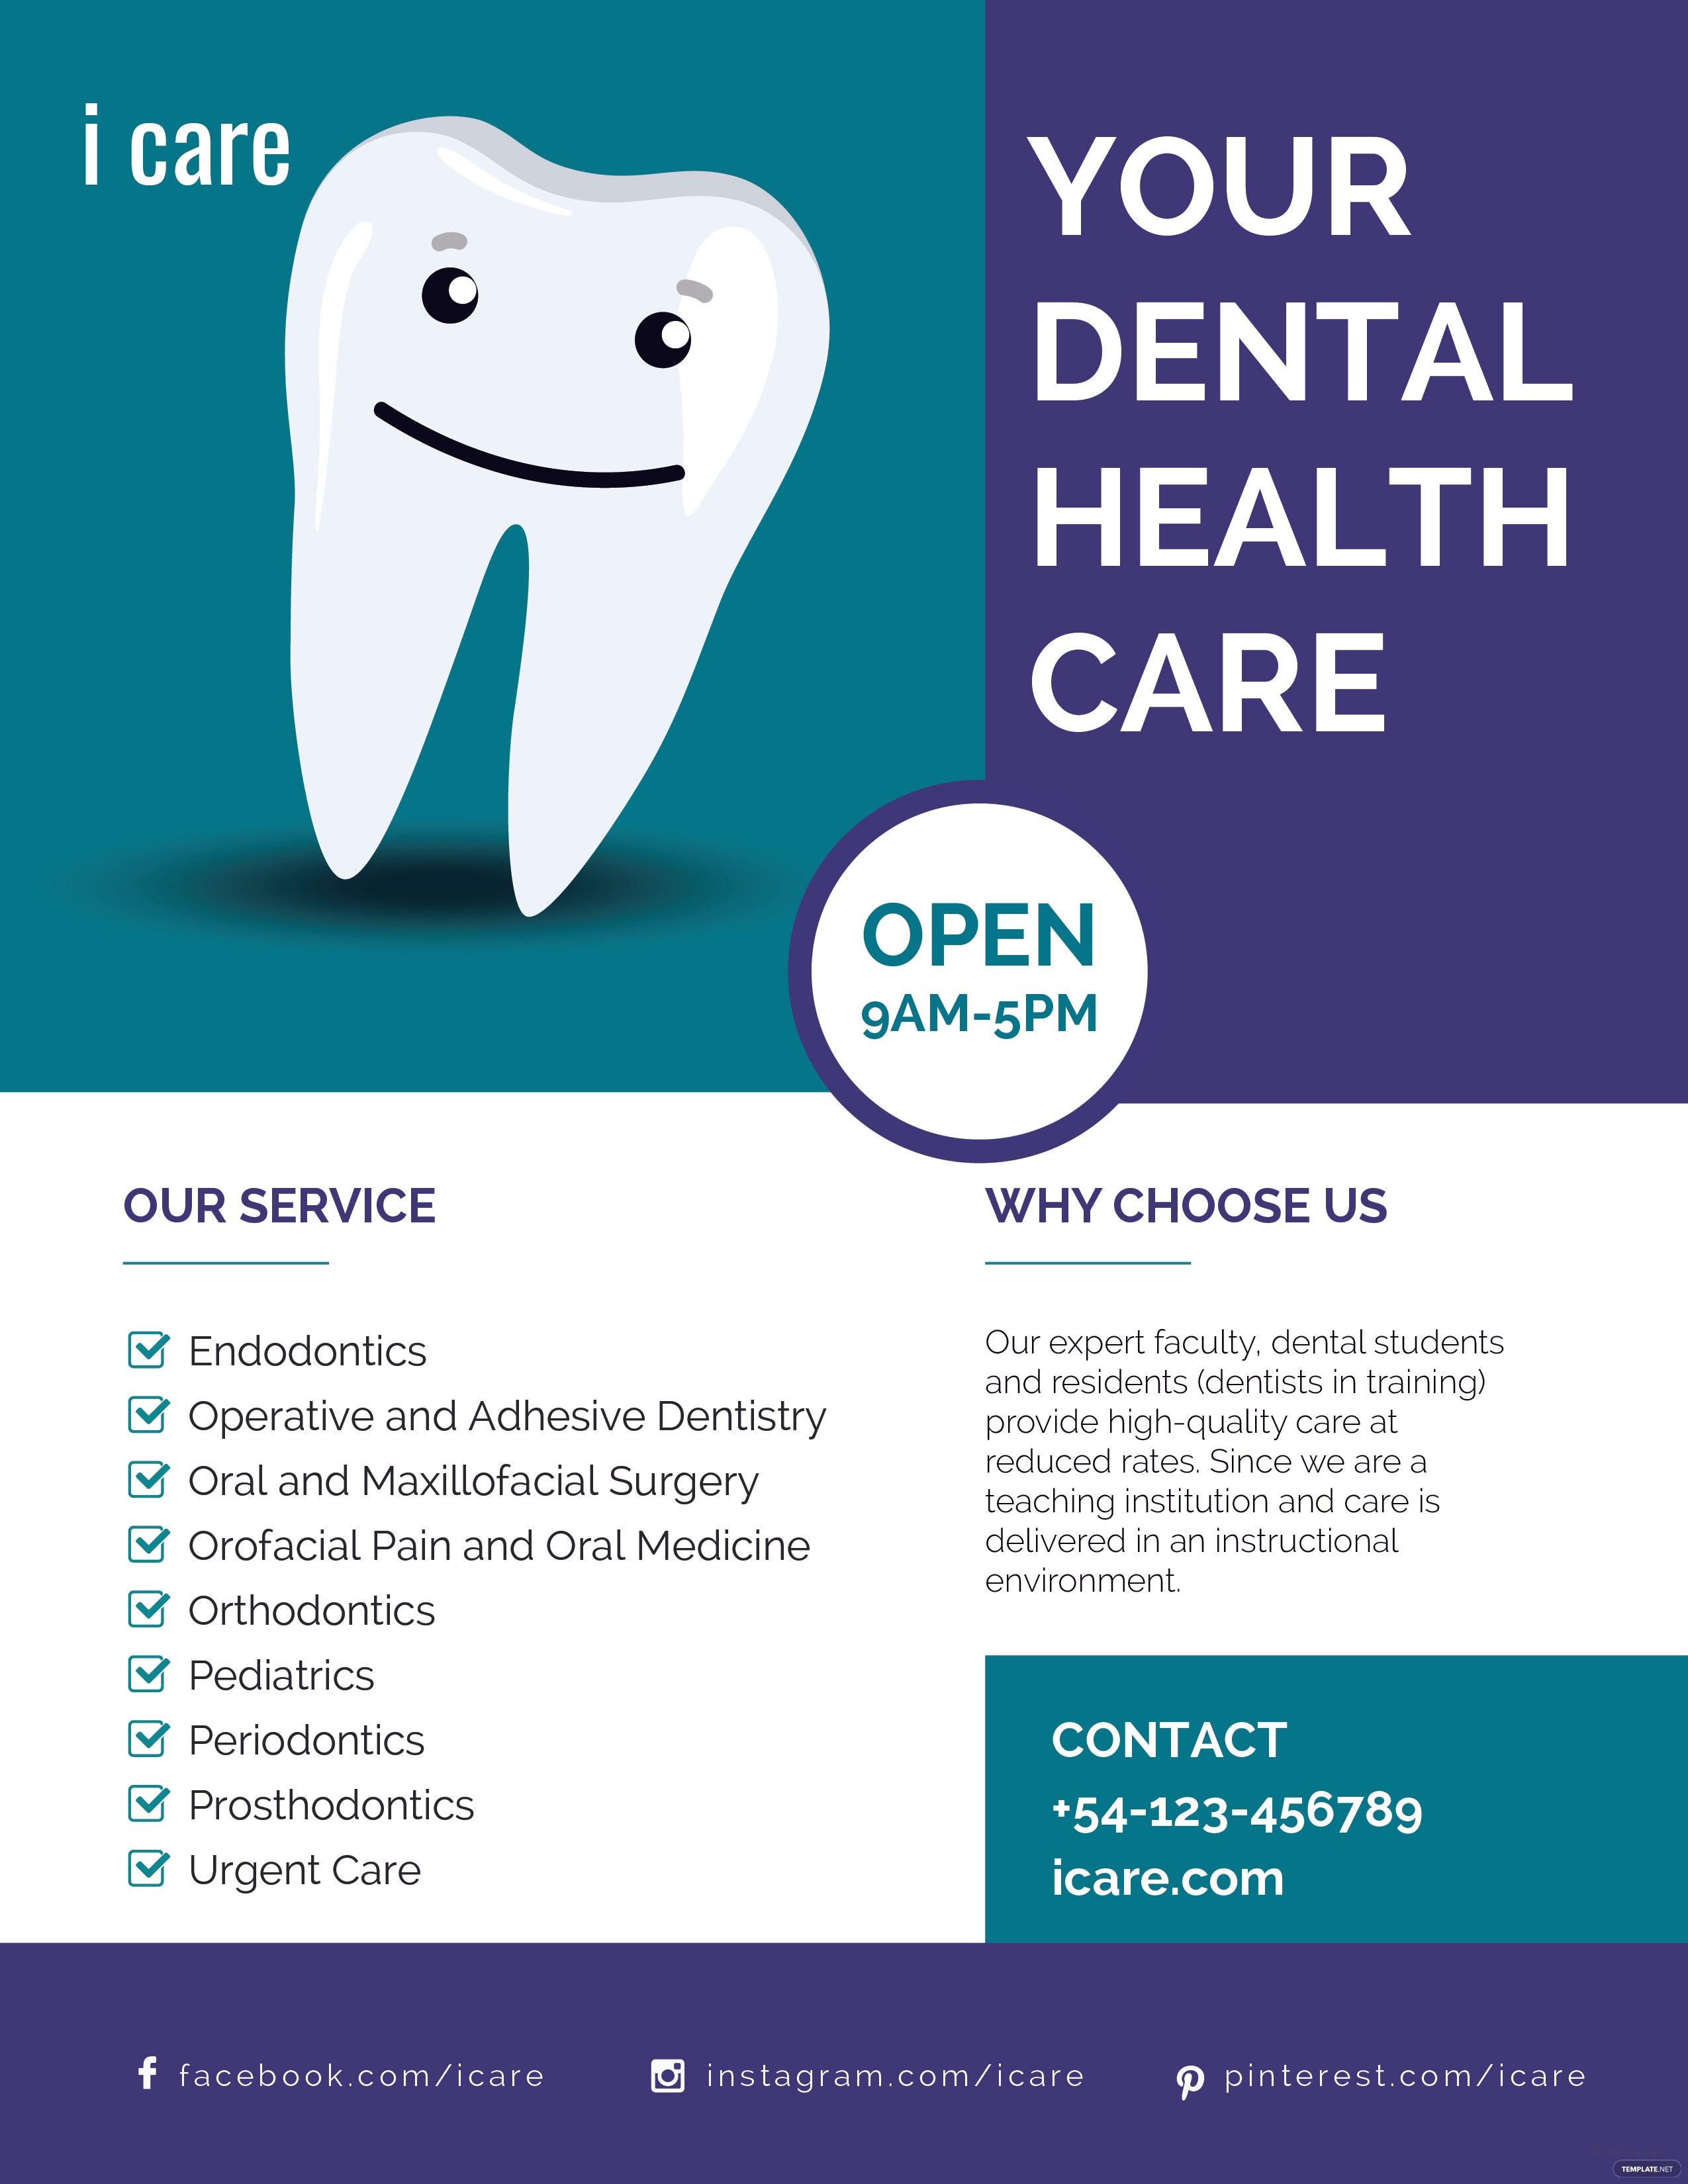 free dental care flyer template in adobe photoshop